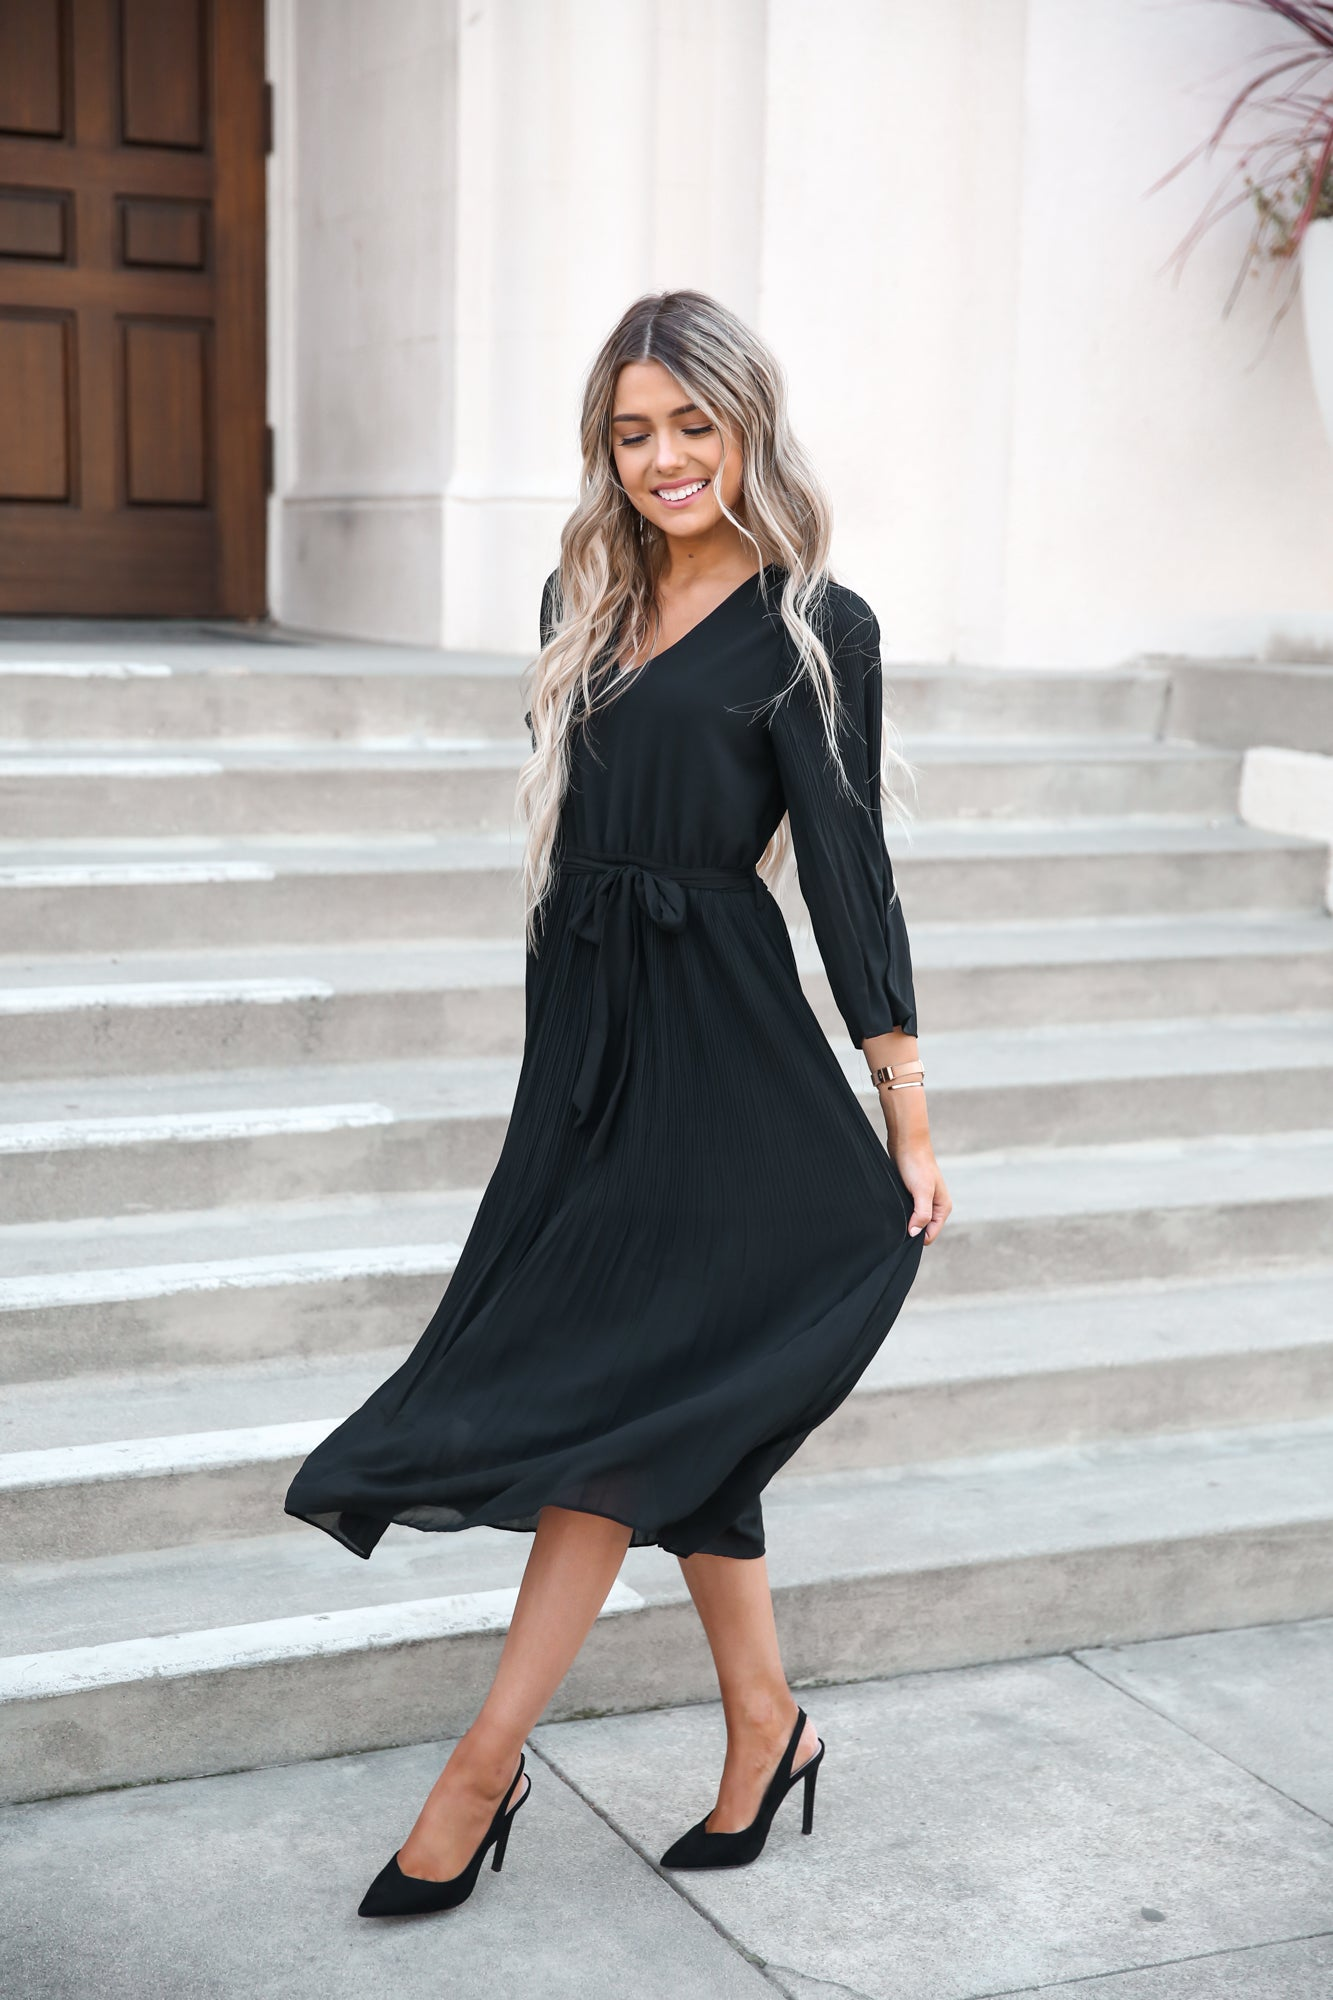 Pleated Black Midi Dress - llacie